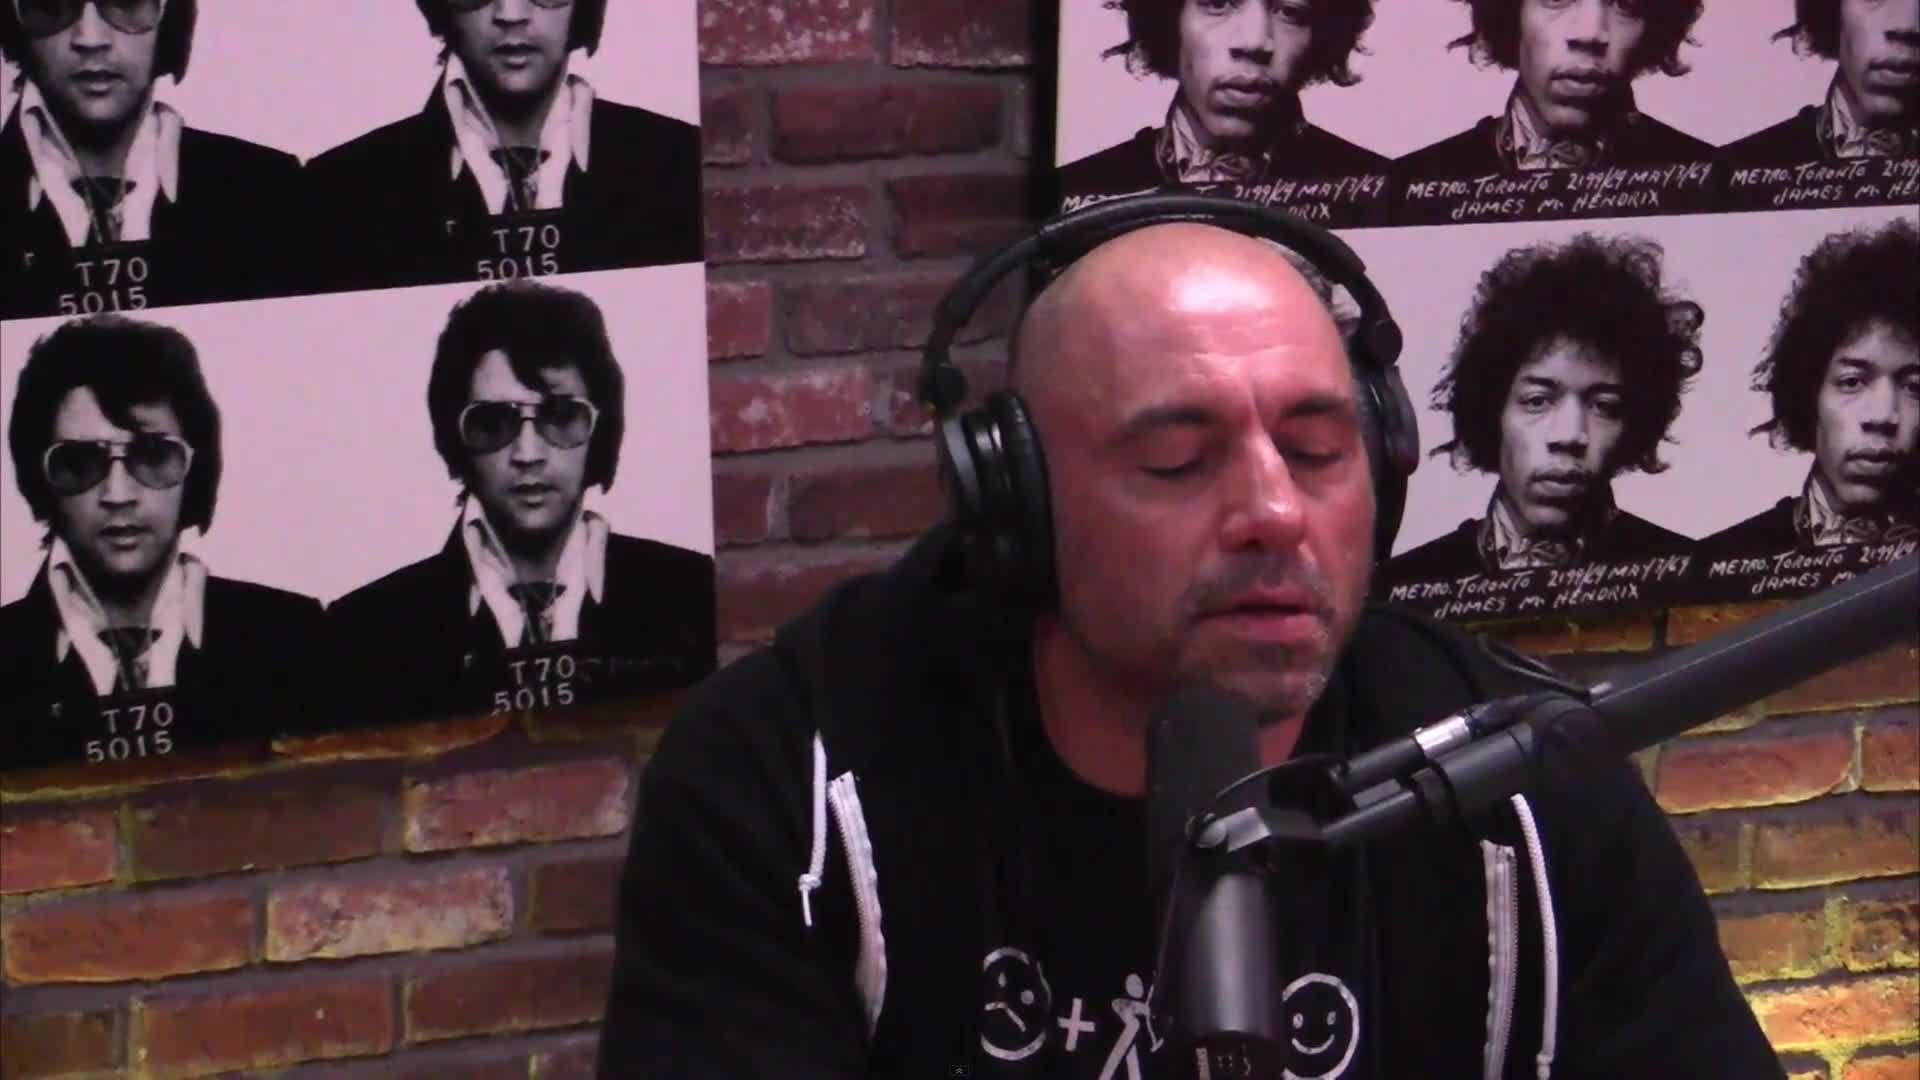 gifs, joerogan, Untitled GIFs